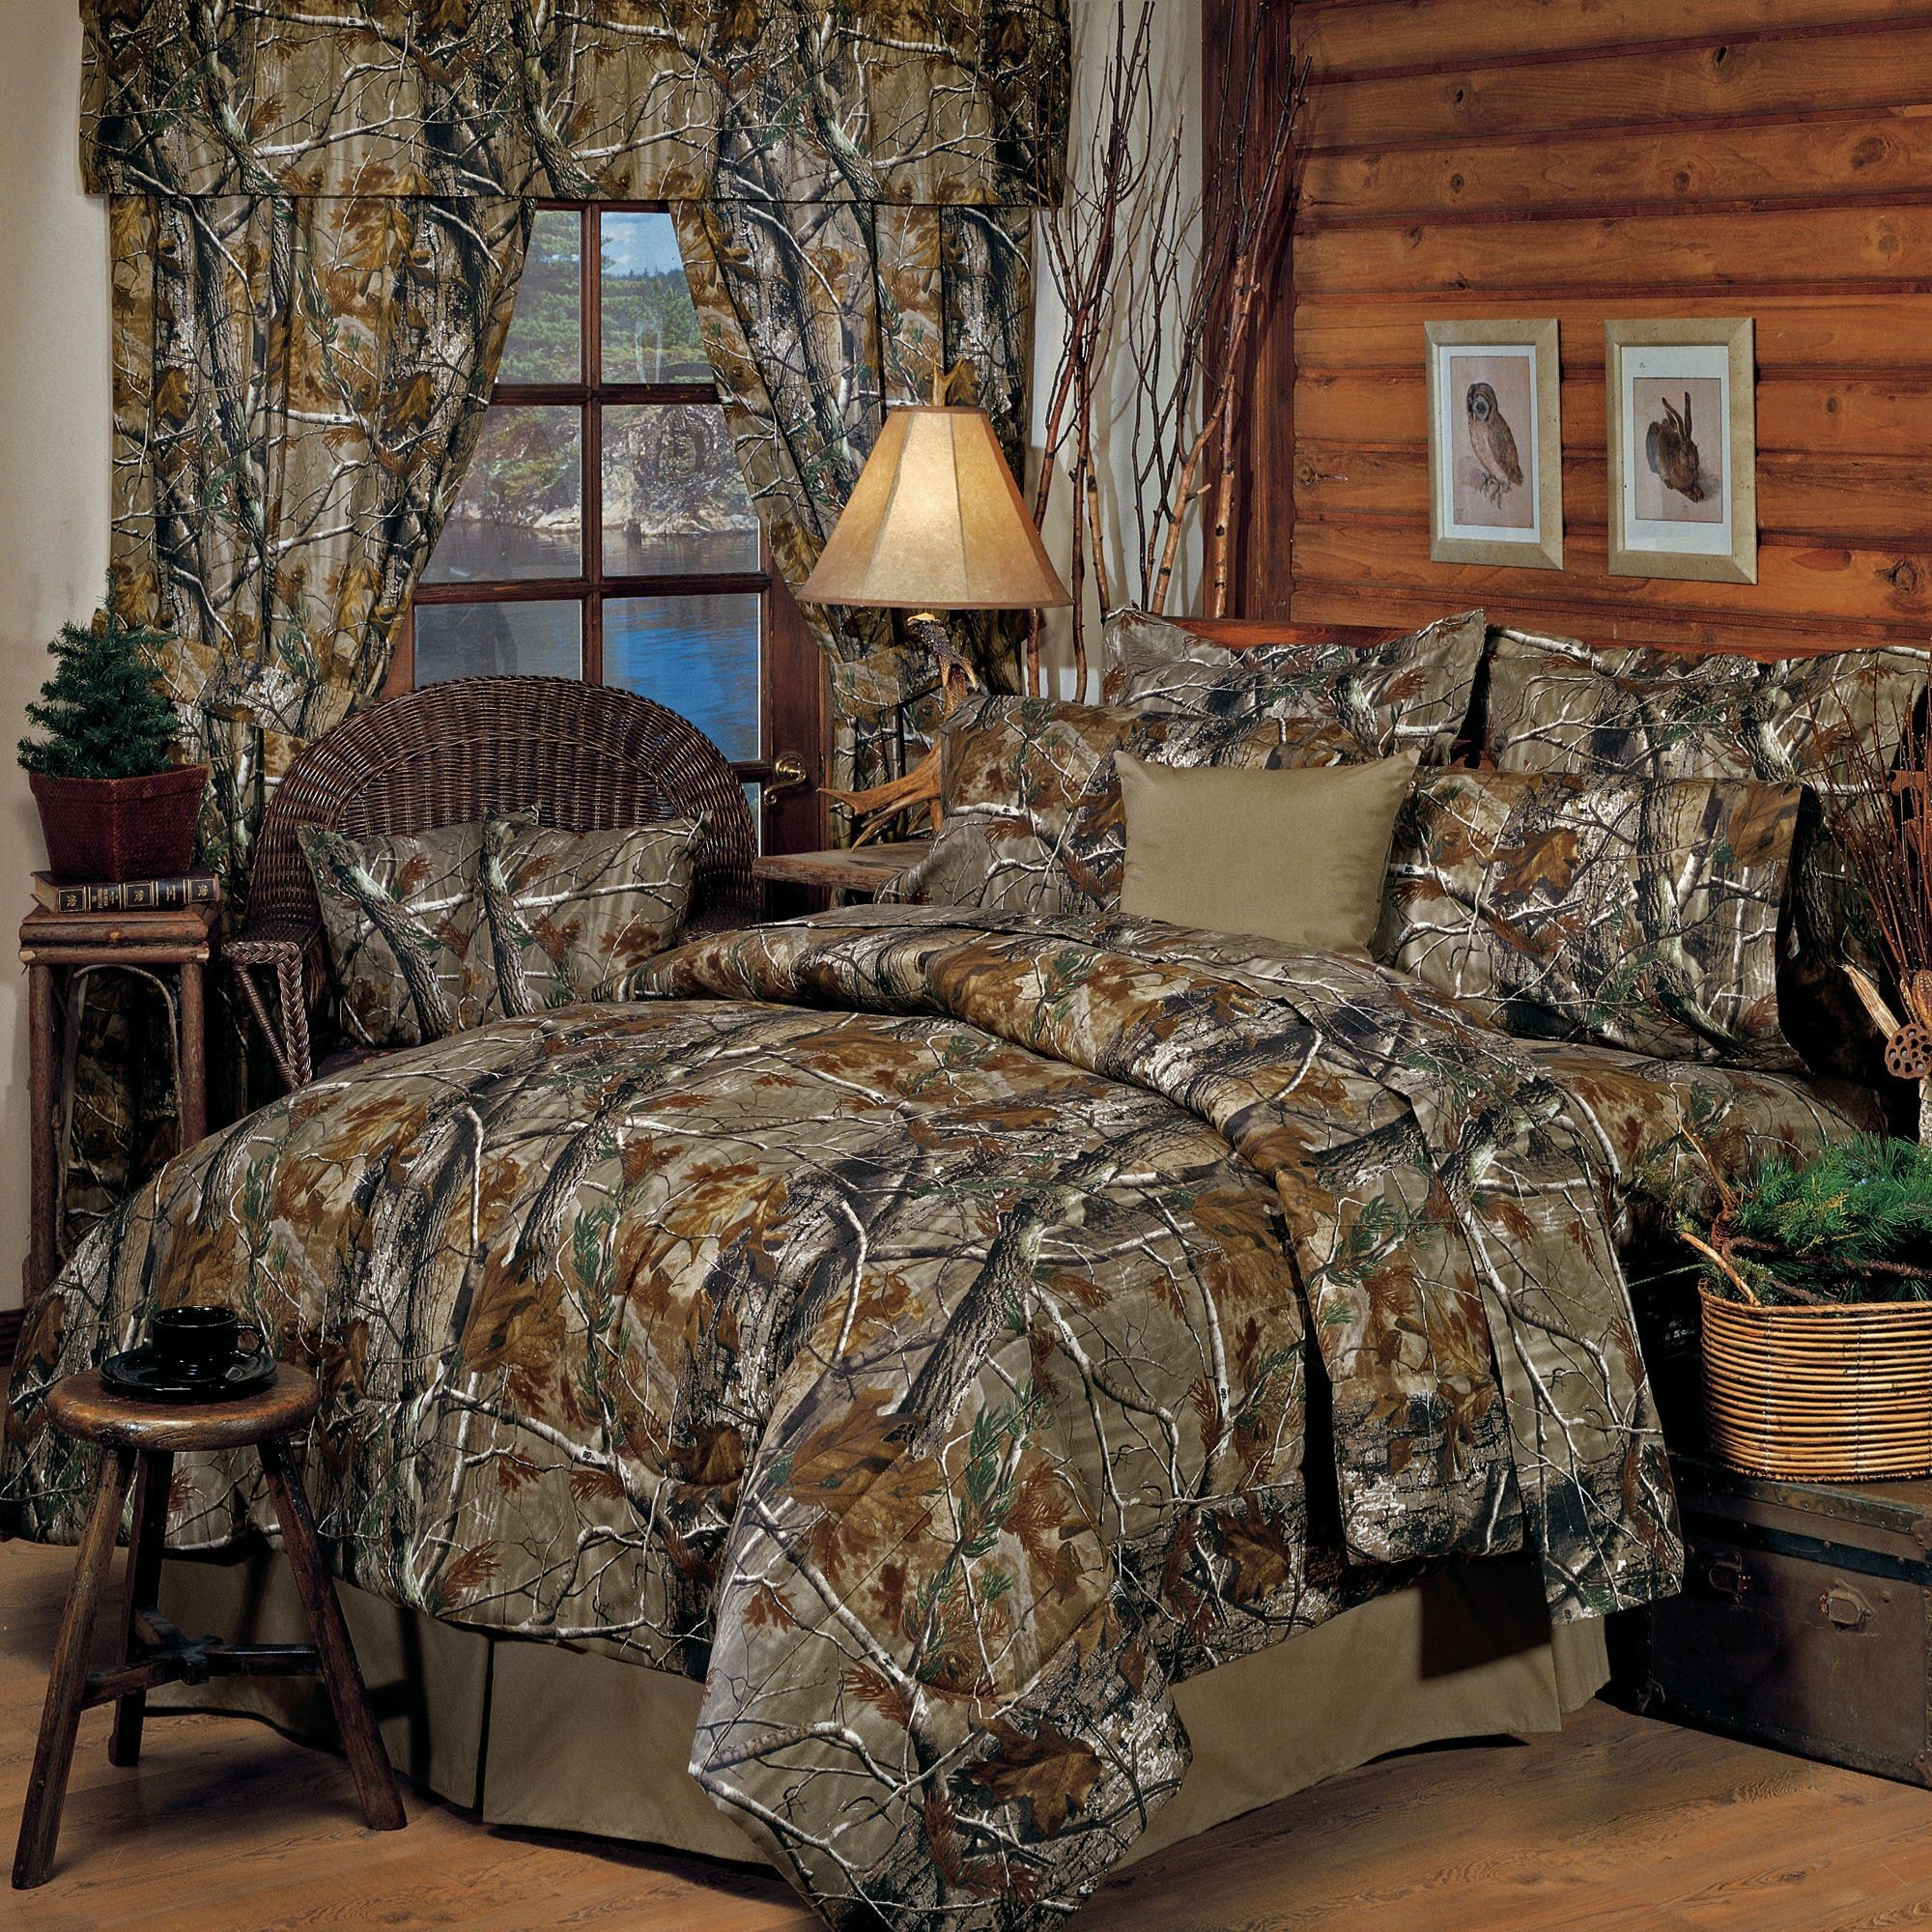 2000x2000 Mossy Oak Bedroom Decor Browning